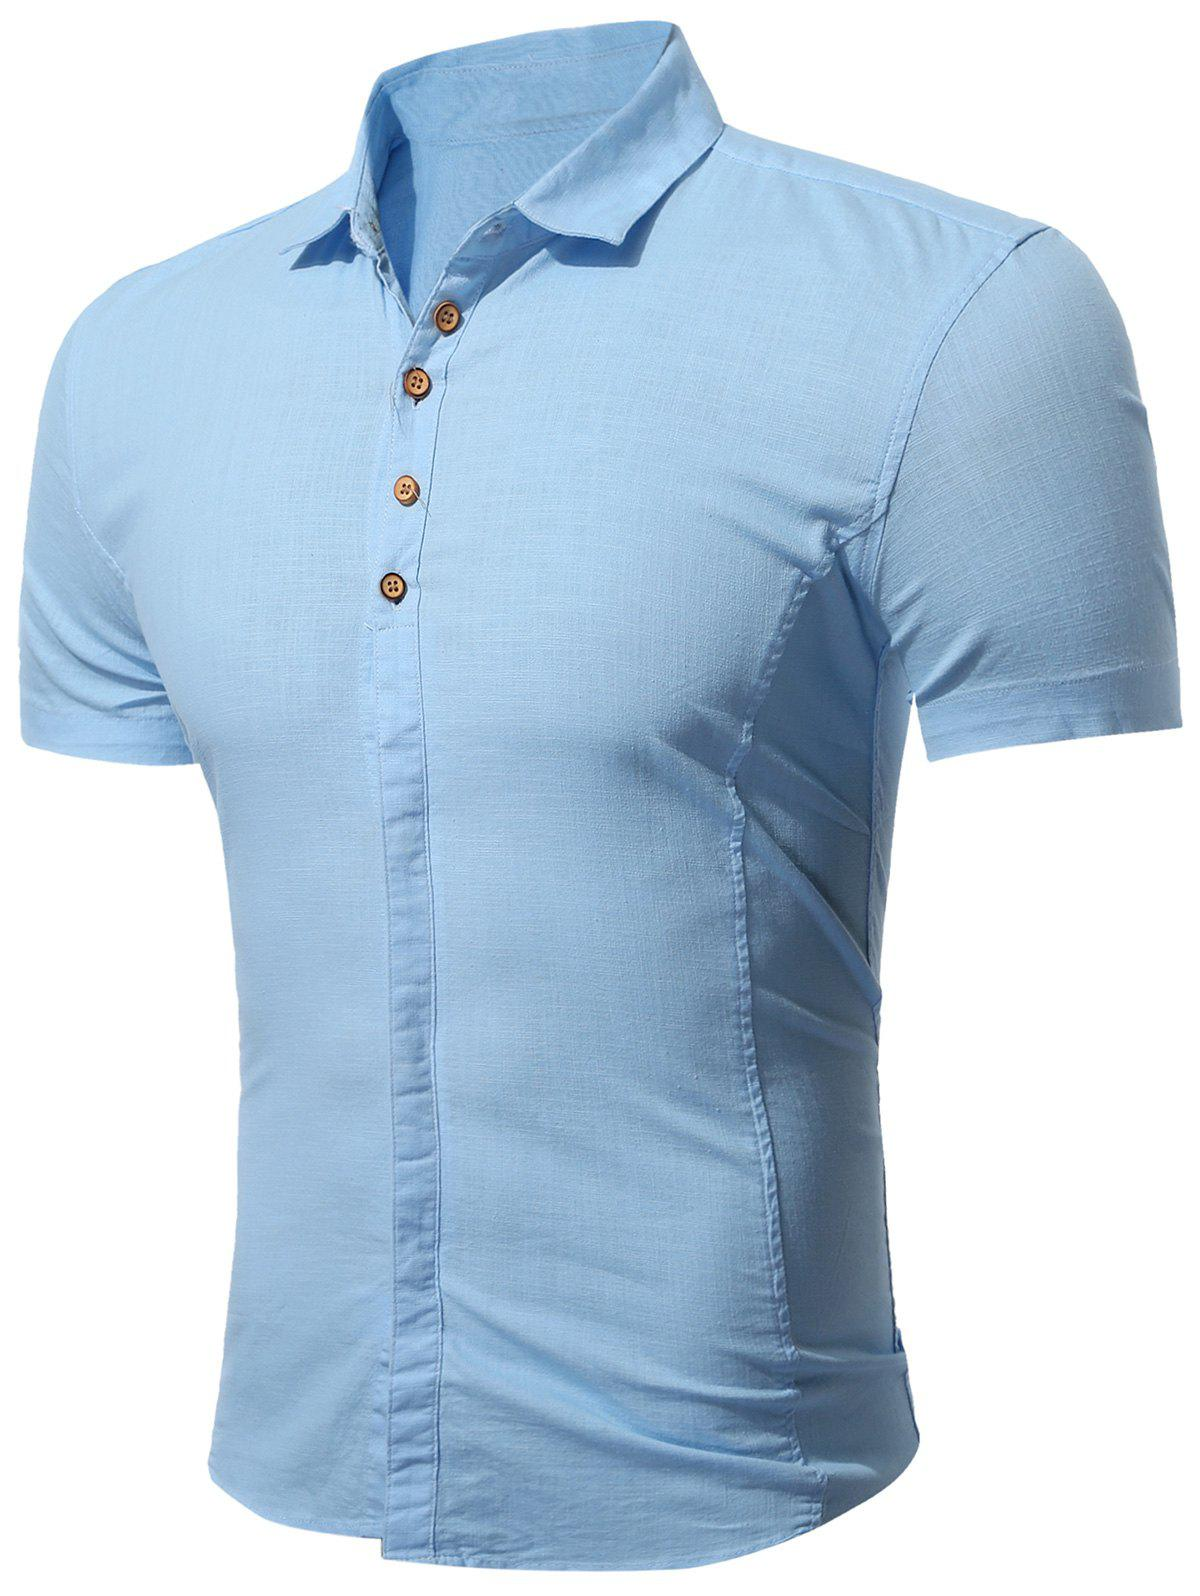 Short Sleeve Multi Botton Up Shirt - LIGHT BLUE 3XL